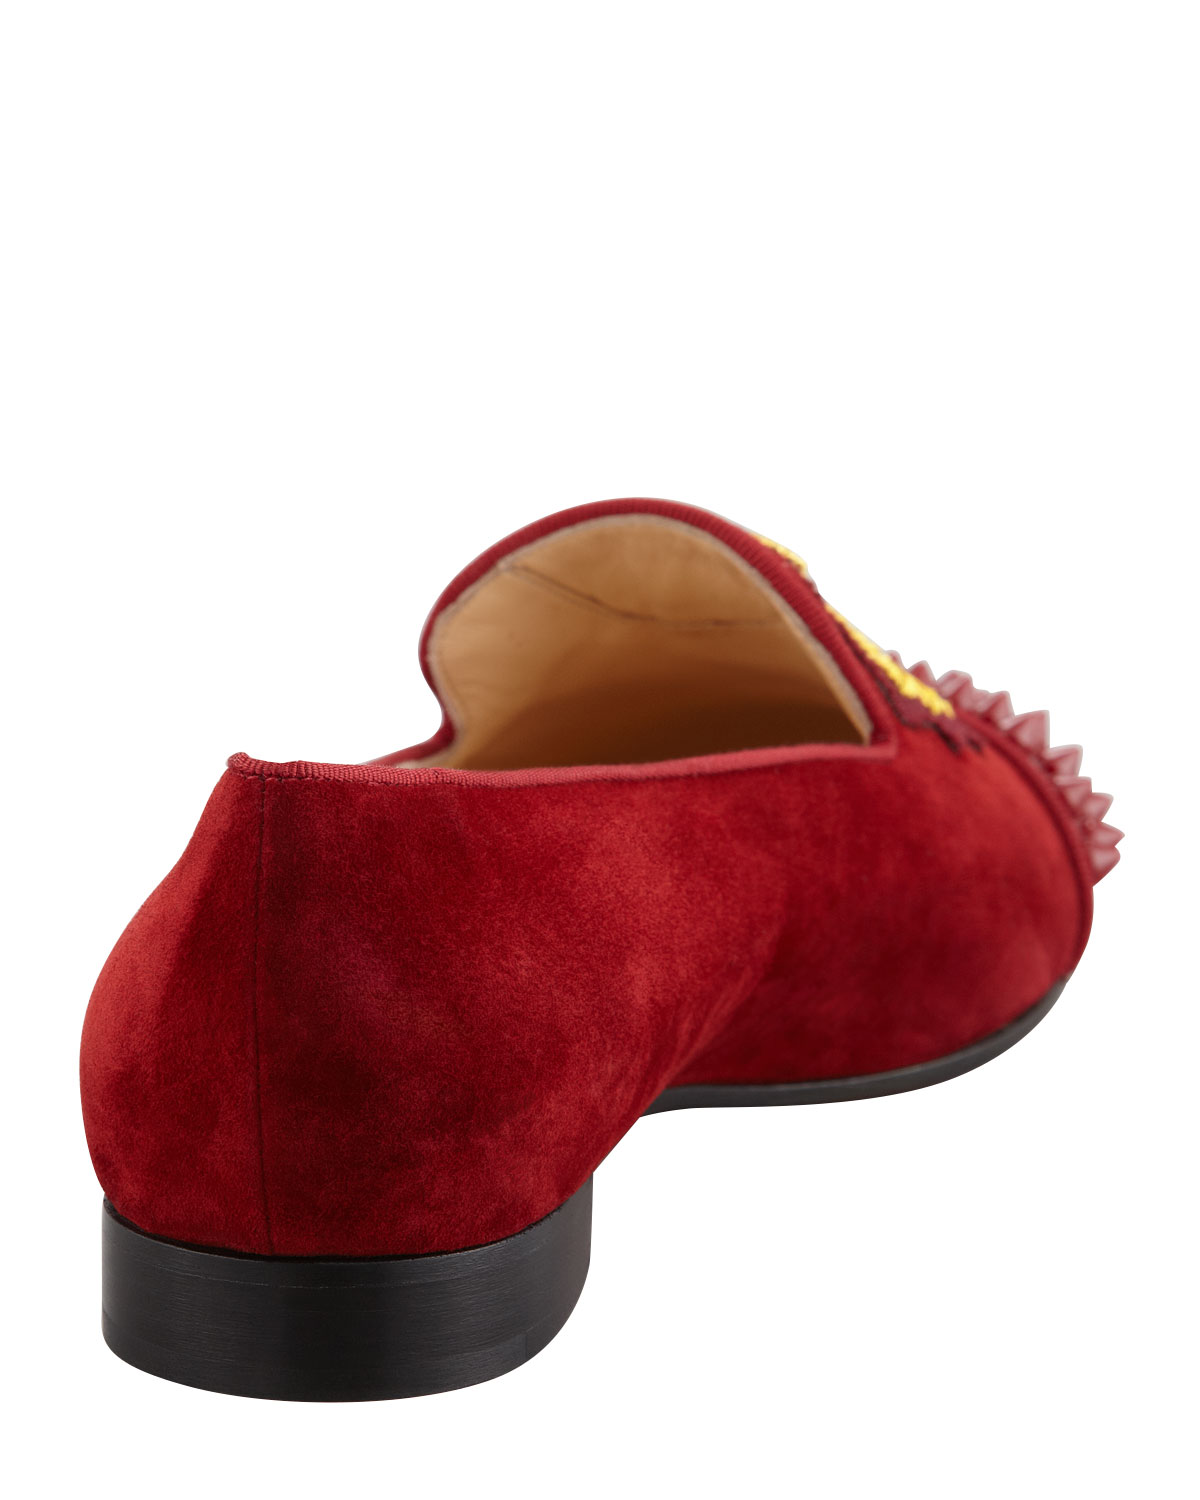 louboutin men shoes - Christian louboutin Intern Spiked Velvet Red Sole Loafer Red in ...